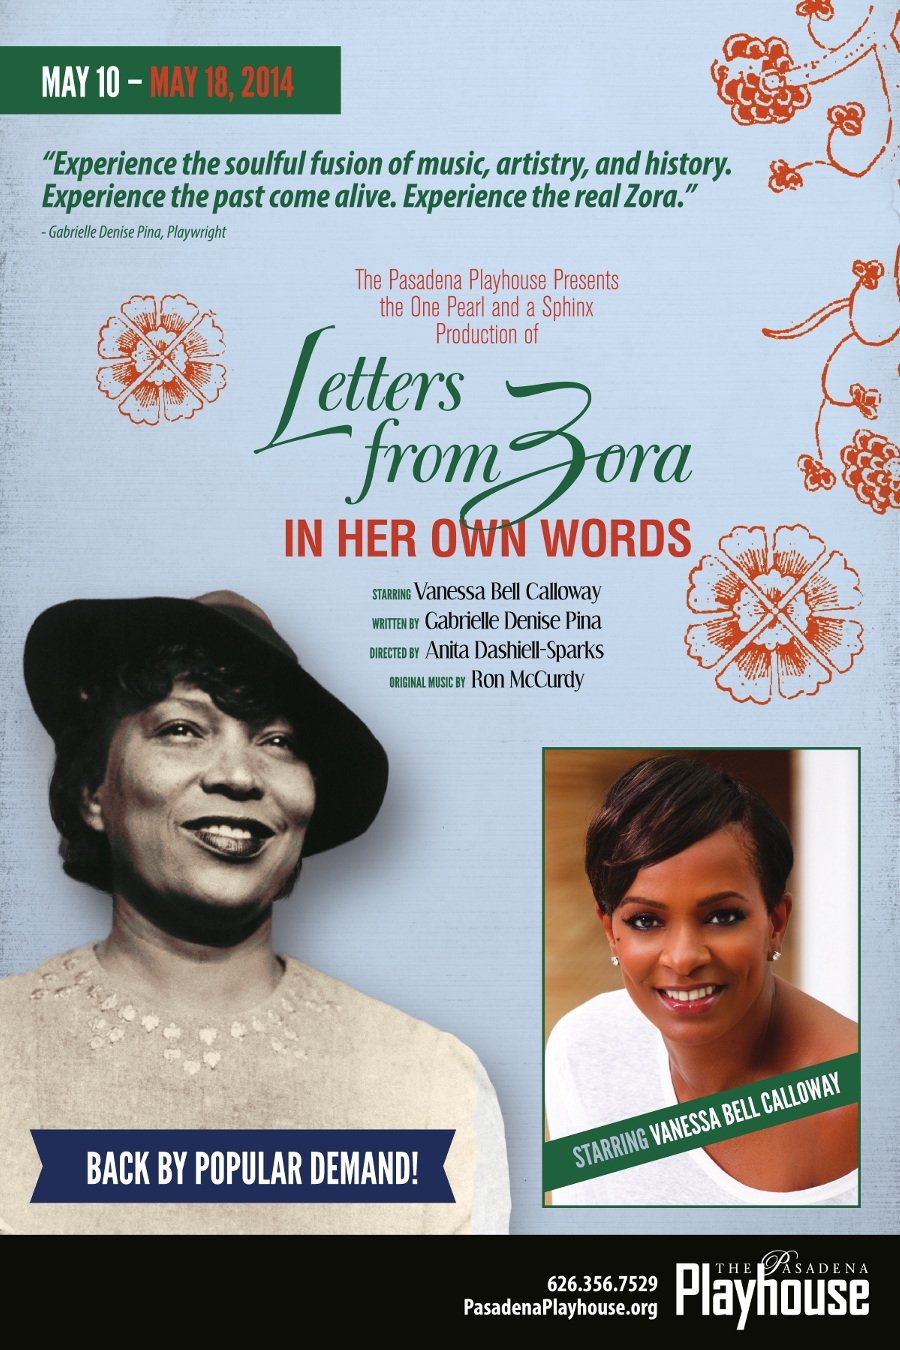 'Letters from Zora' opens to rave reviews!